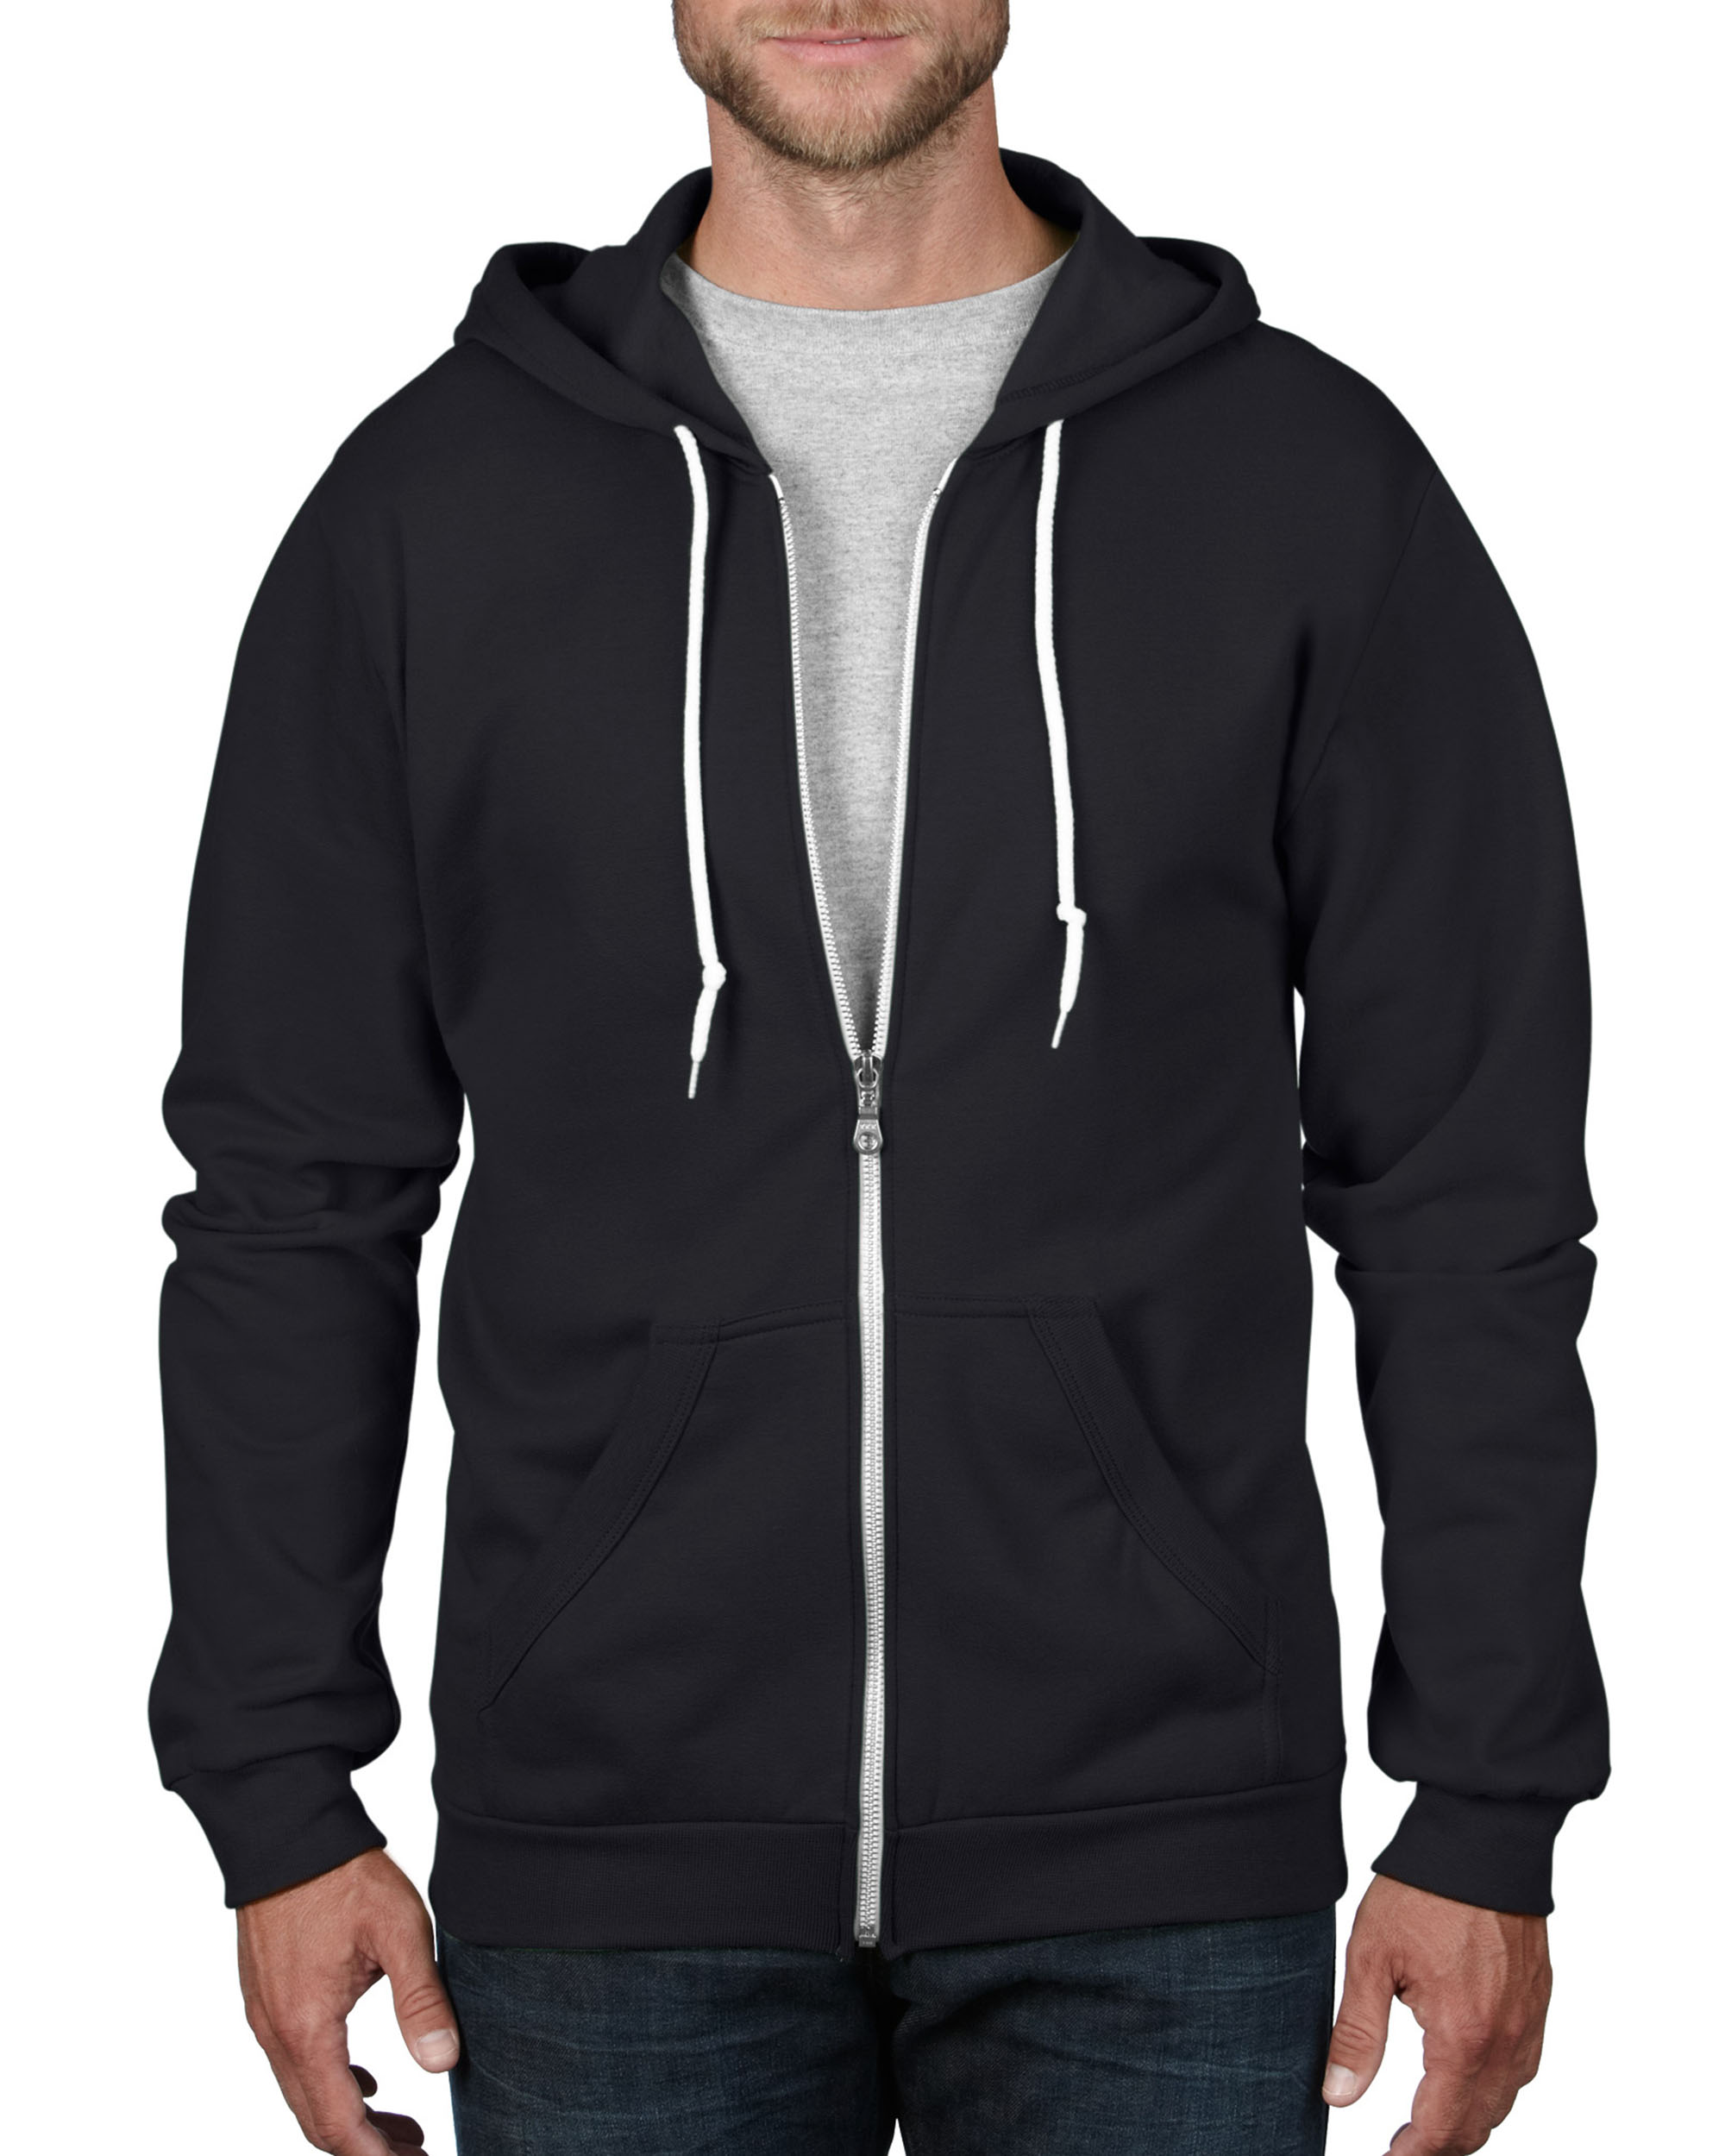 Anvil Sweater Hooded Full Zip for him